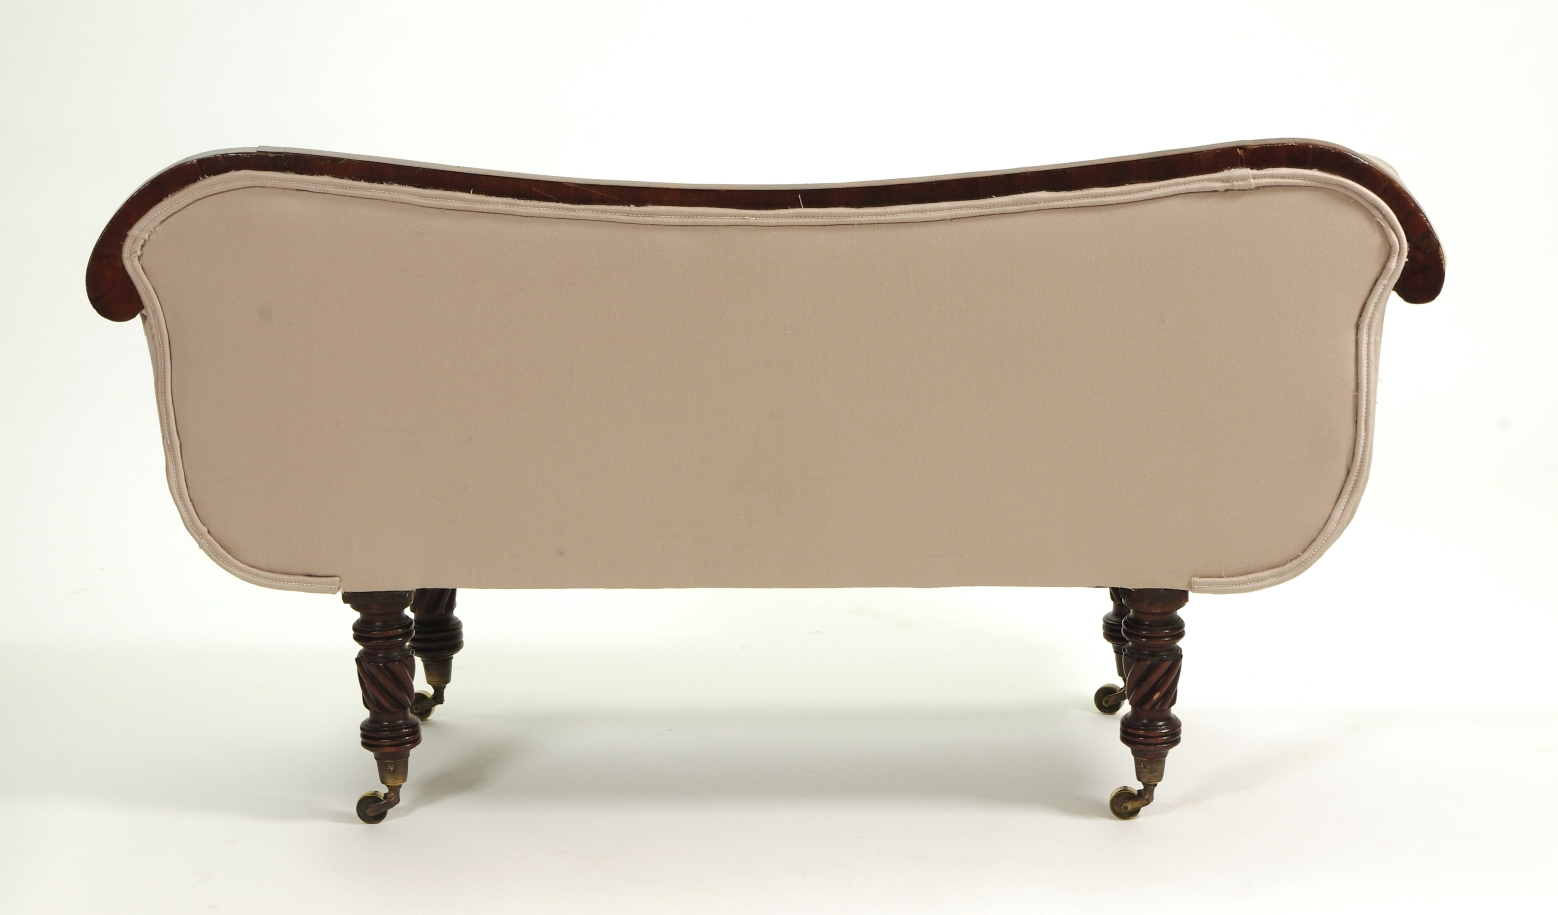 View 6: Regency Mahogany Child's Sofa, c. 1820